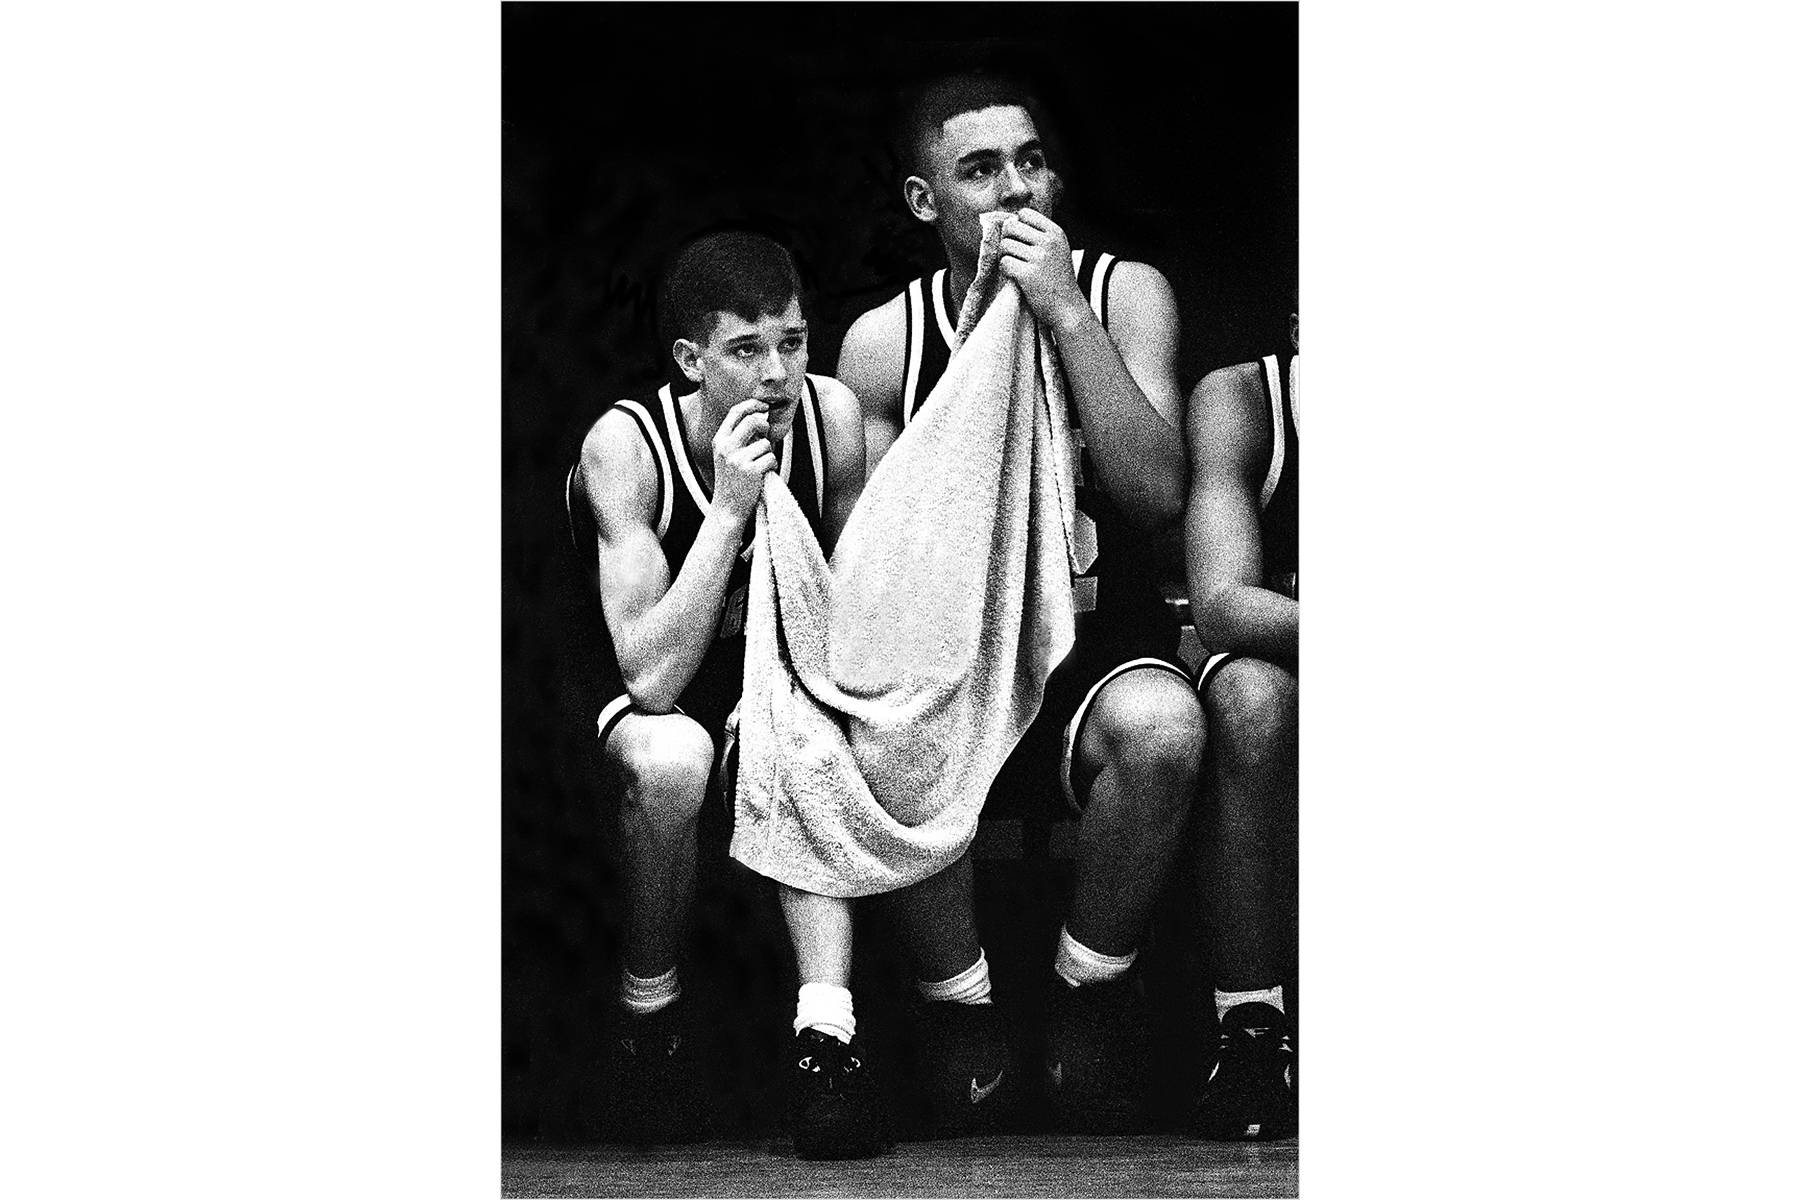 14_1basketball_towels92800009forweb.jpg